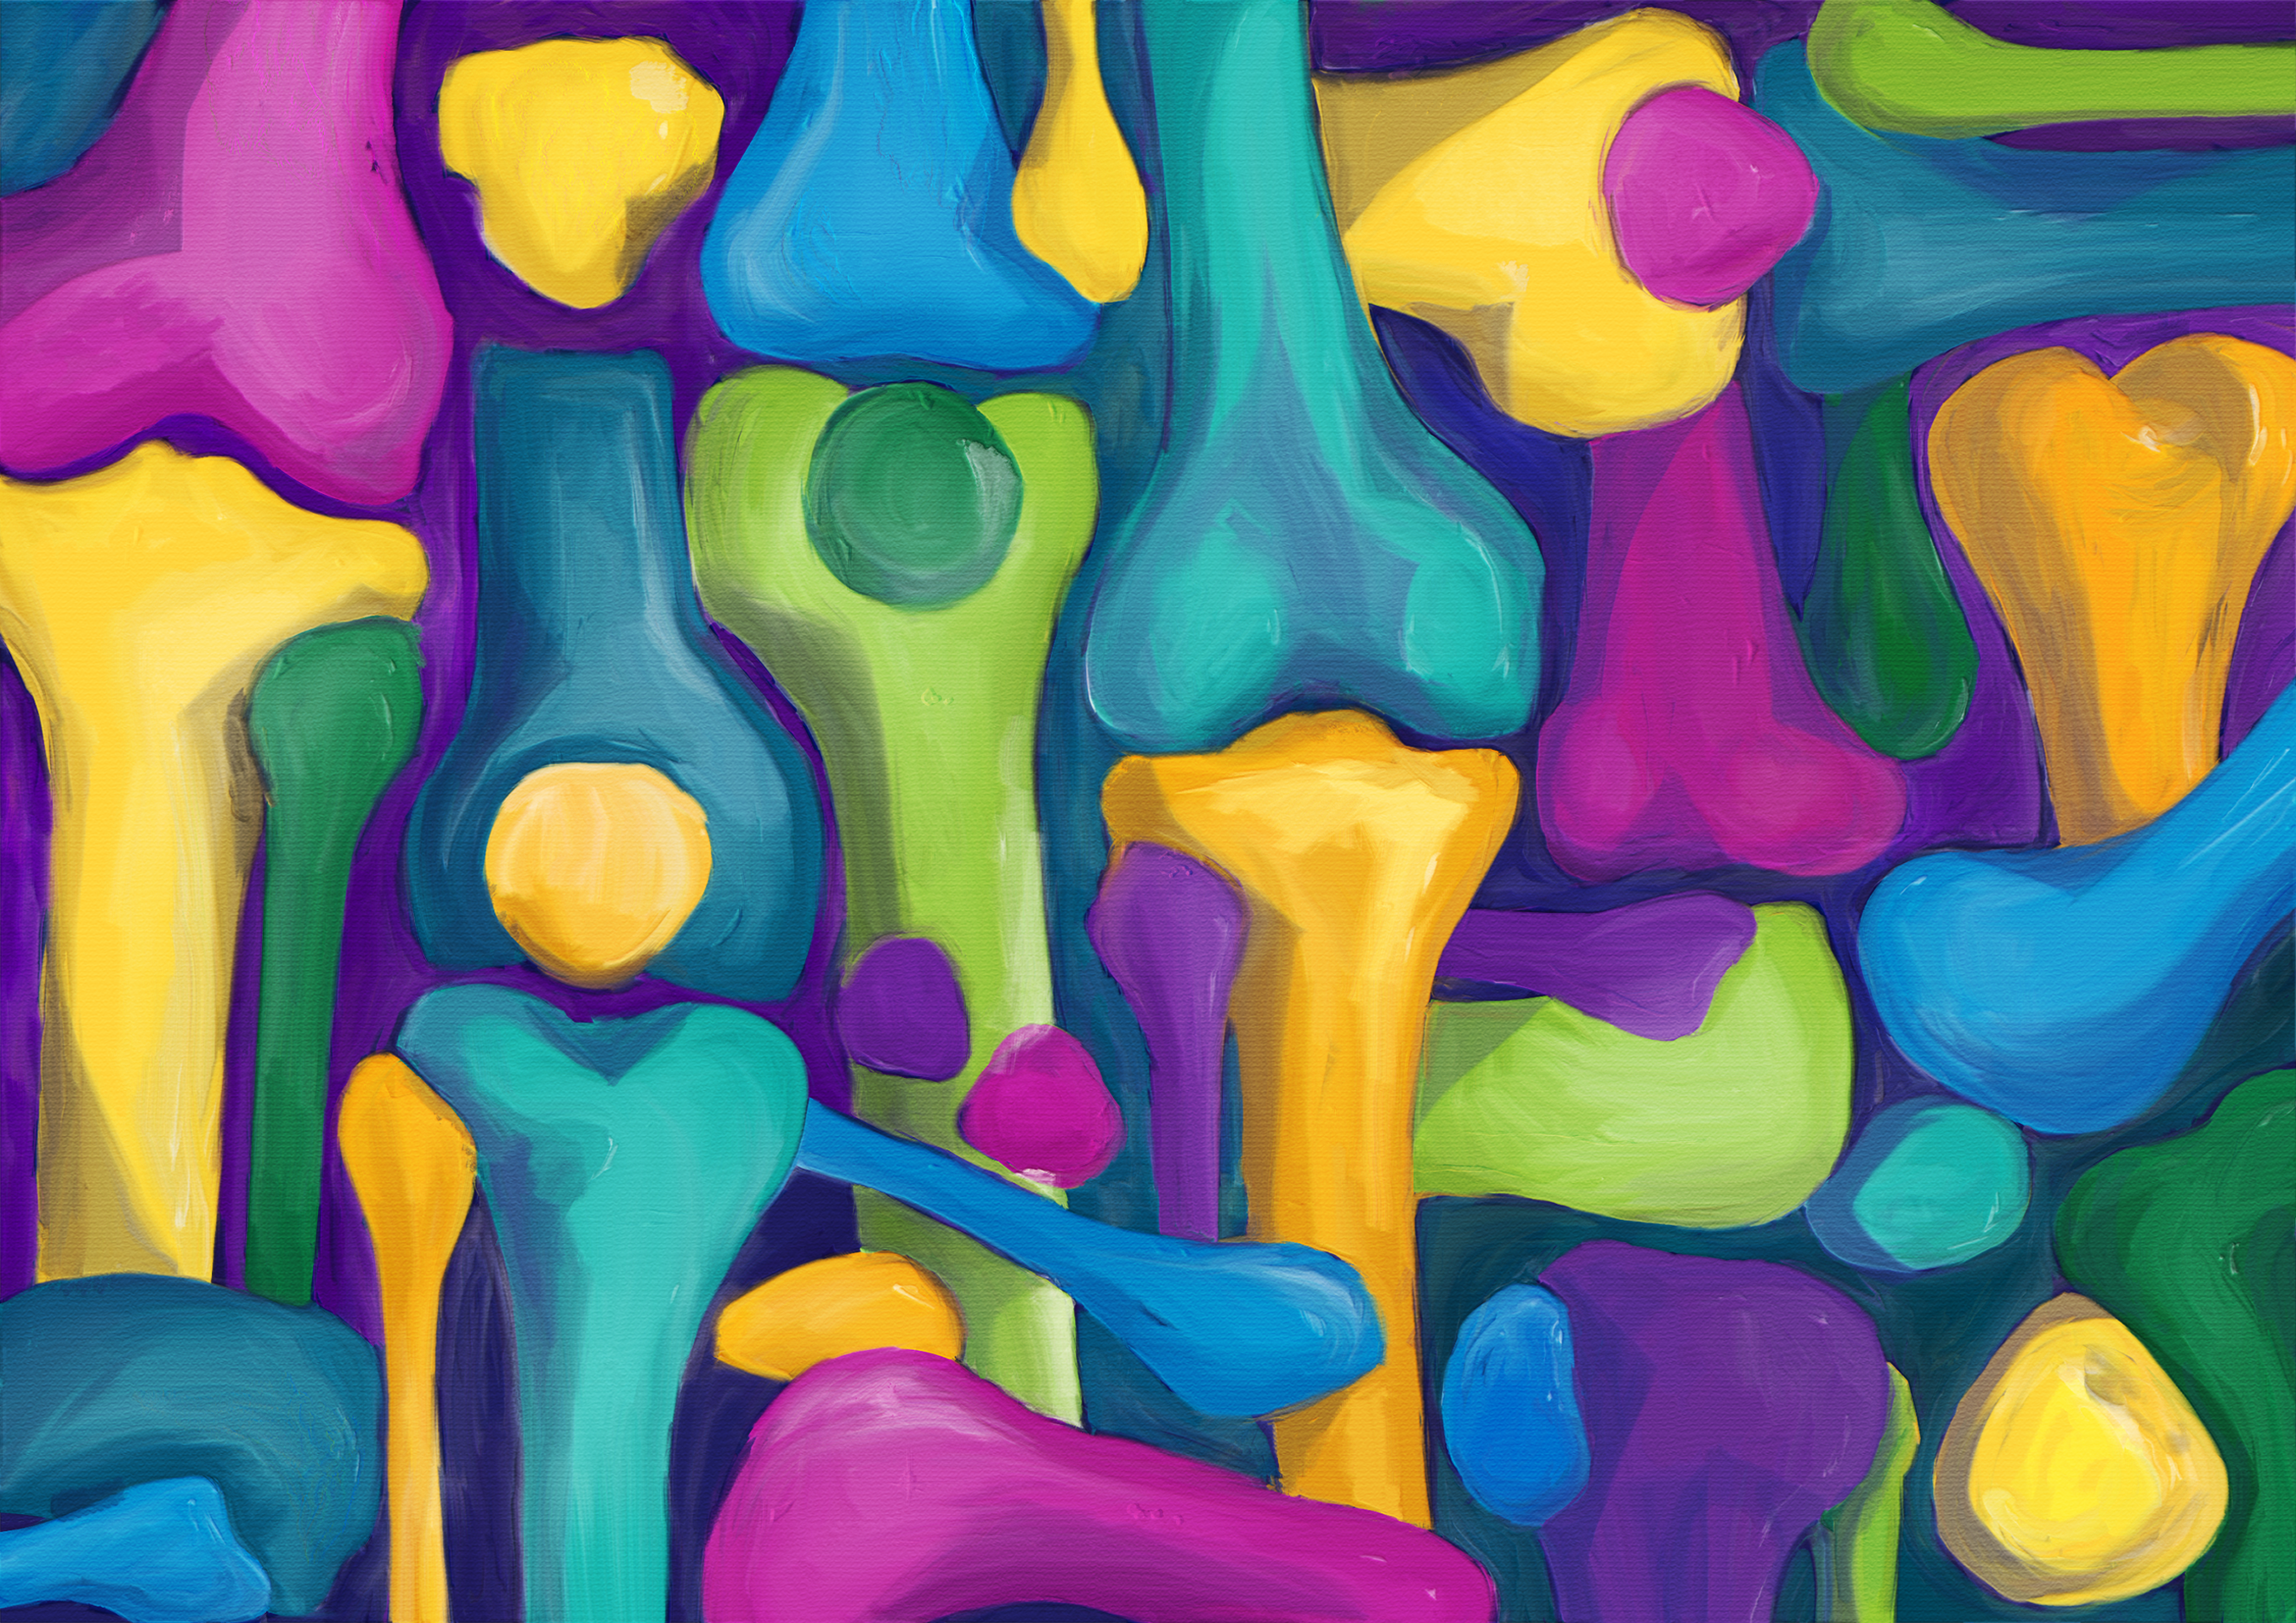 Abstract and colorfull illustration of the human knee (joint)